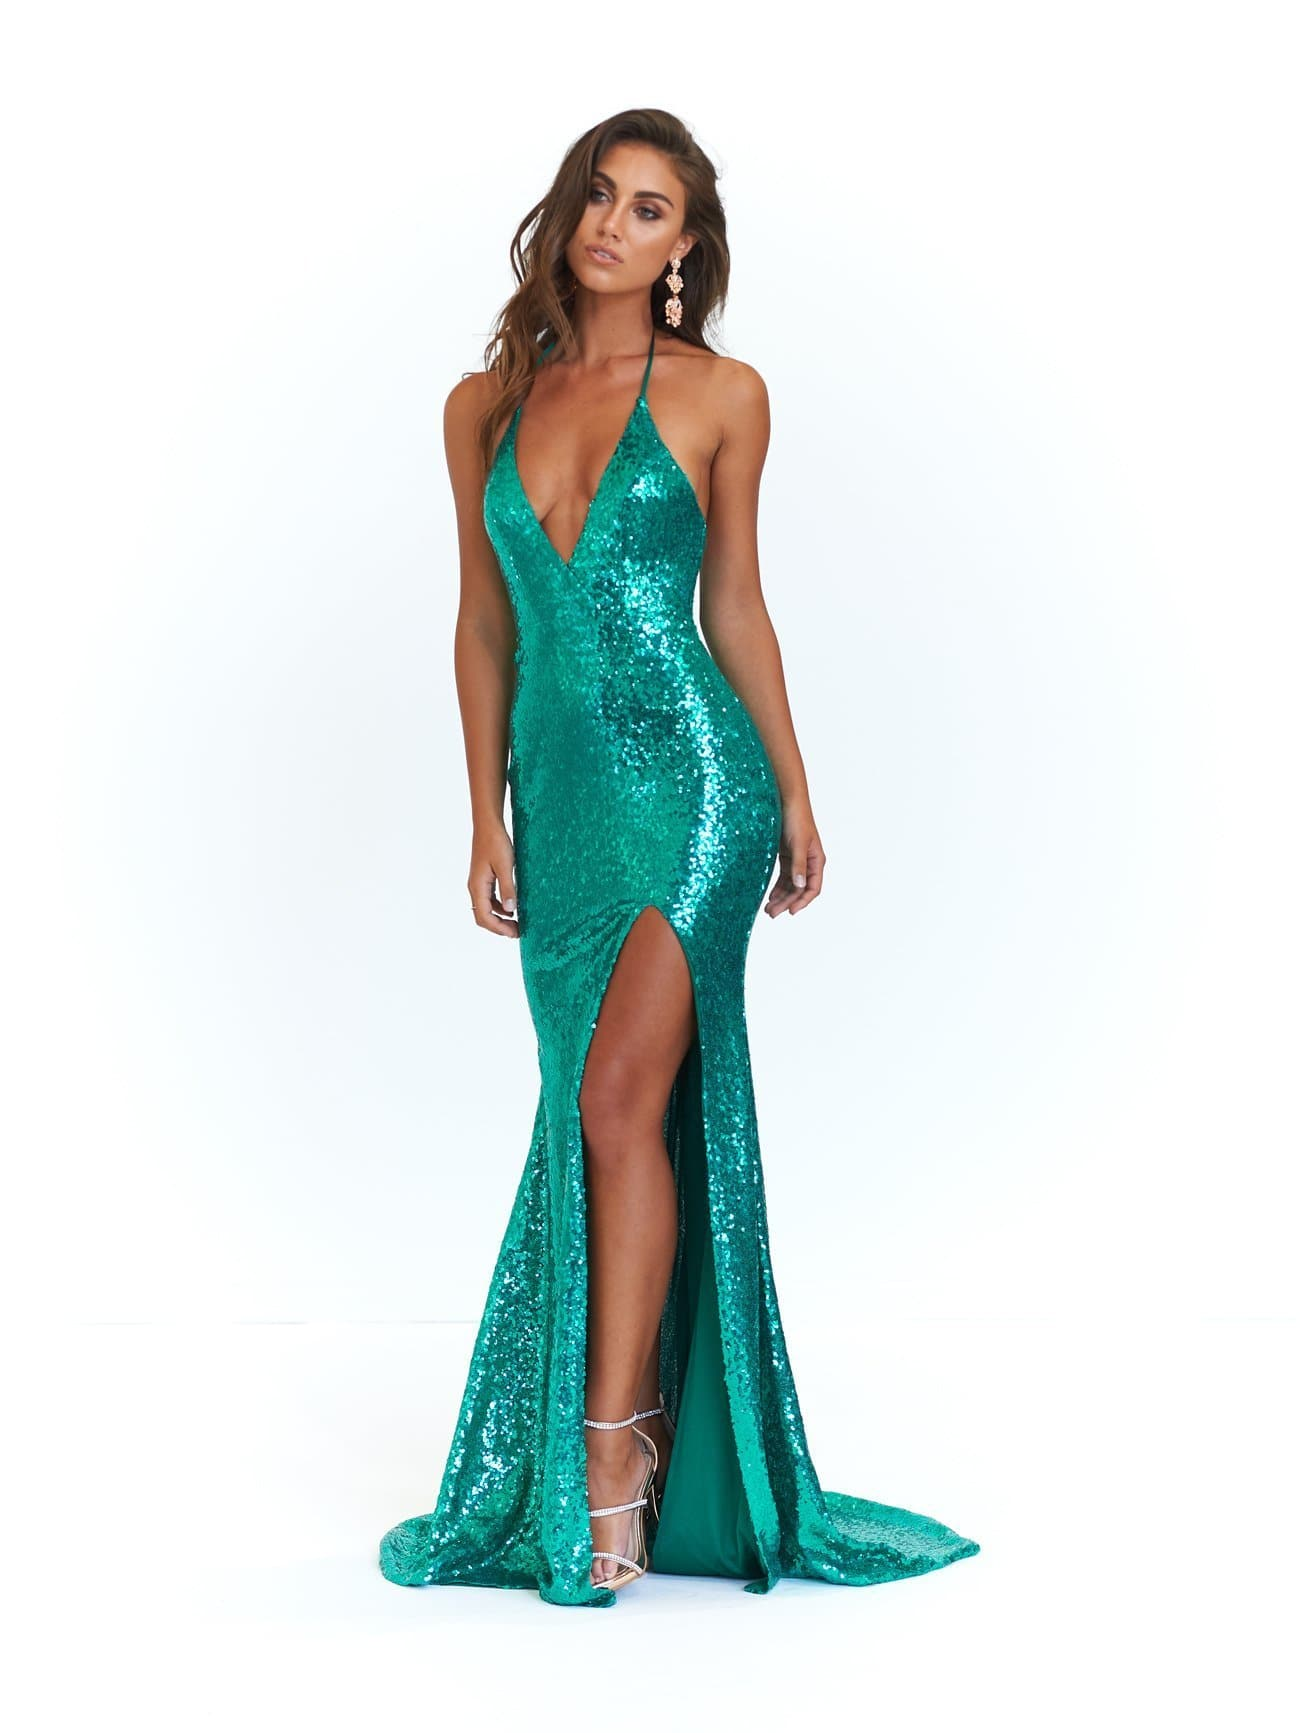 Kylie Formal Dress - Emerald Sequins Slit Mermaid Gown